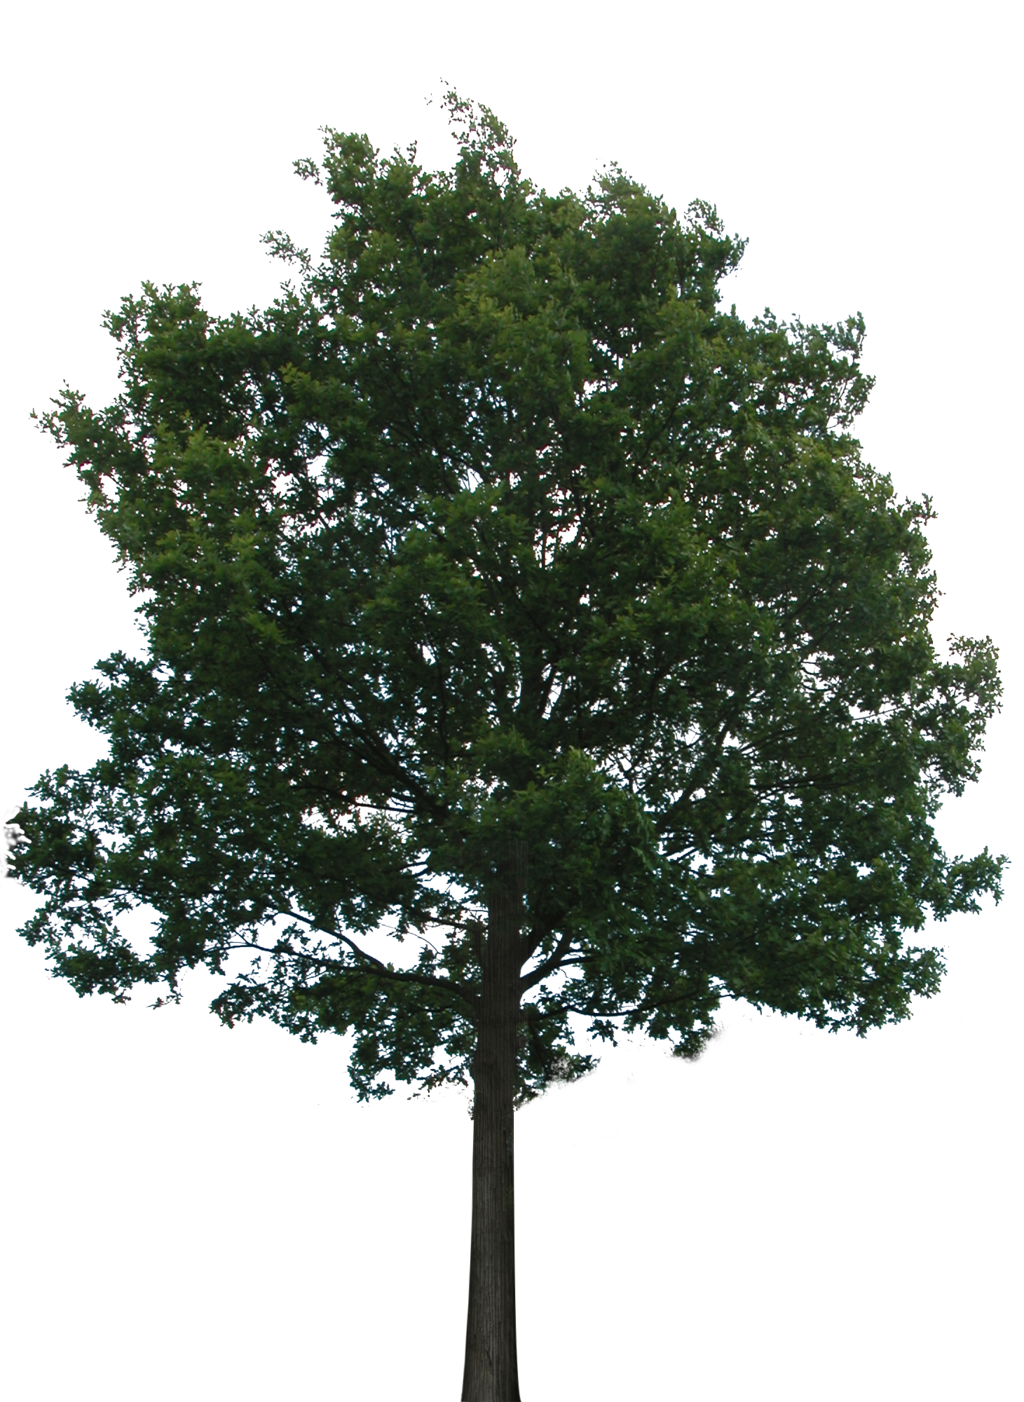 Tree 1 Png With Transparency Tree Photoshop Plants Garden Illustration